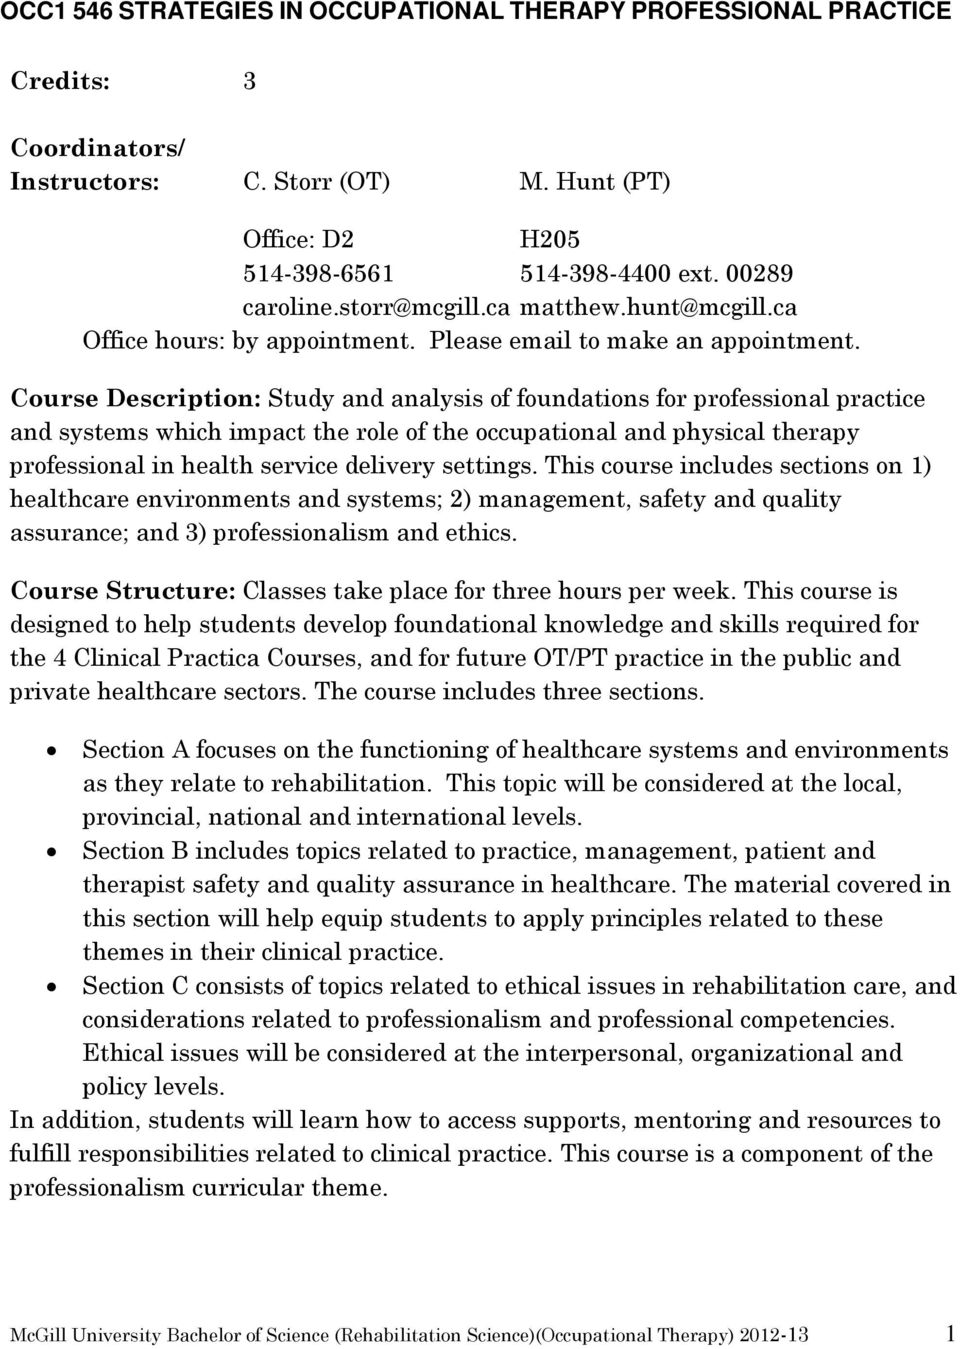 Course Description: Study and analysis of foundations for professional practice and systems which impact the role of the occupational and physical therapy professional in health service delivery